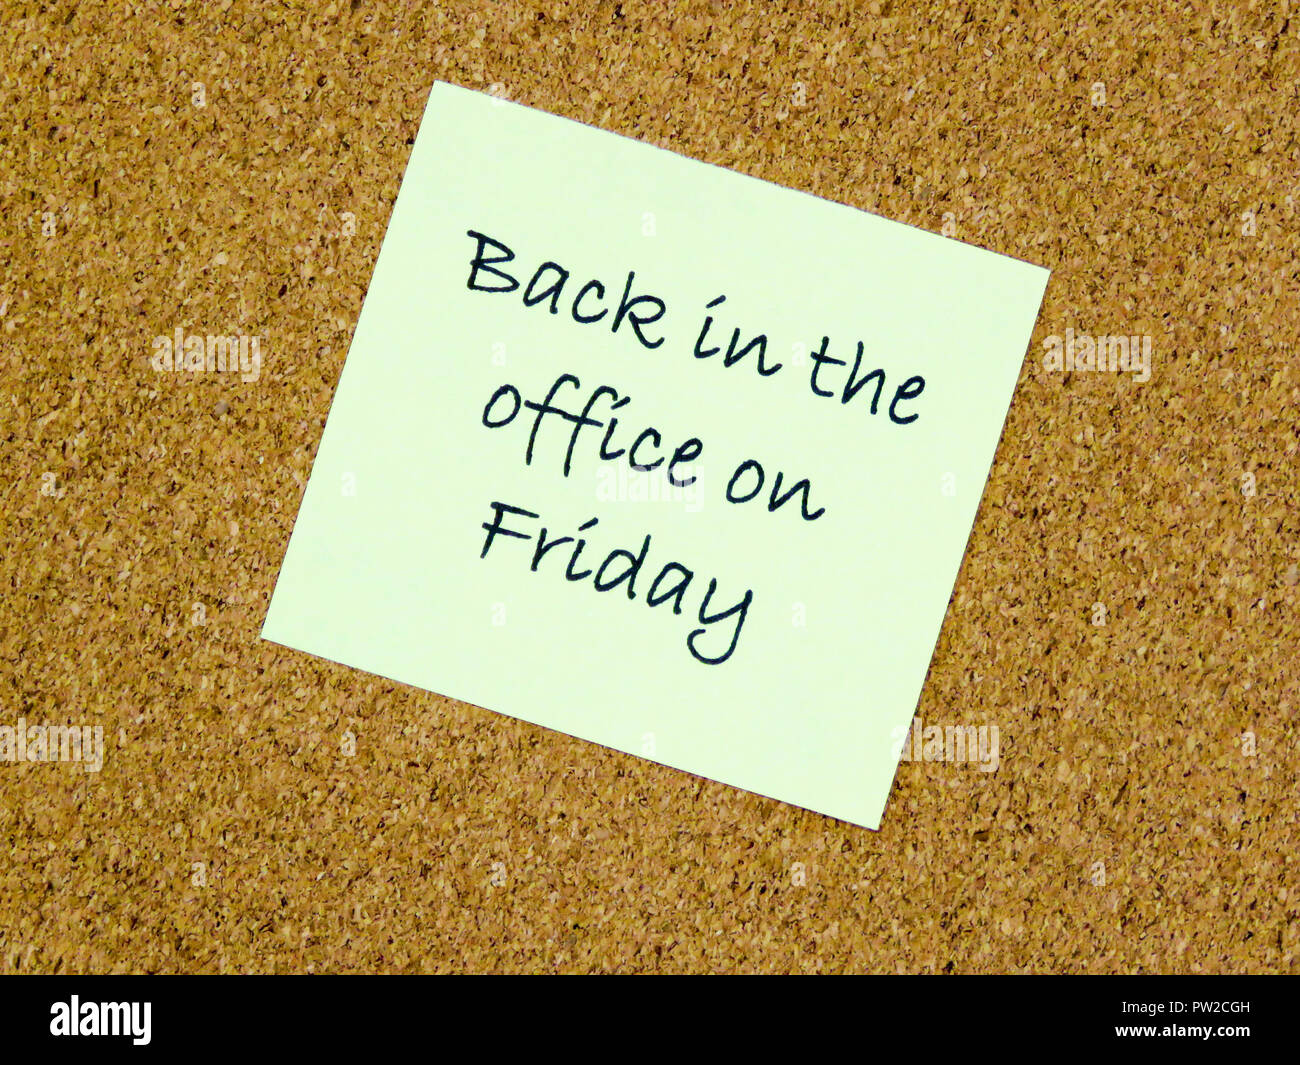 A yellow sticky note with back in the office on Friday written on it on a cork board background Stock Photo